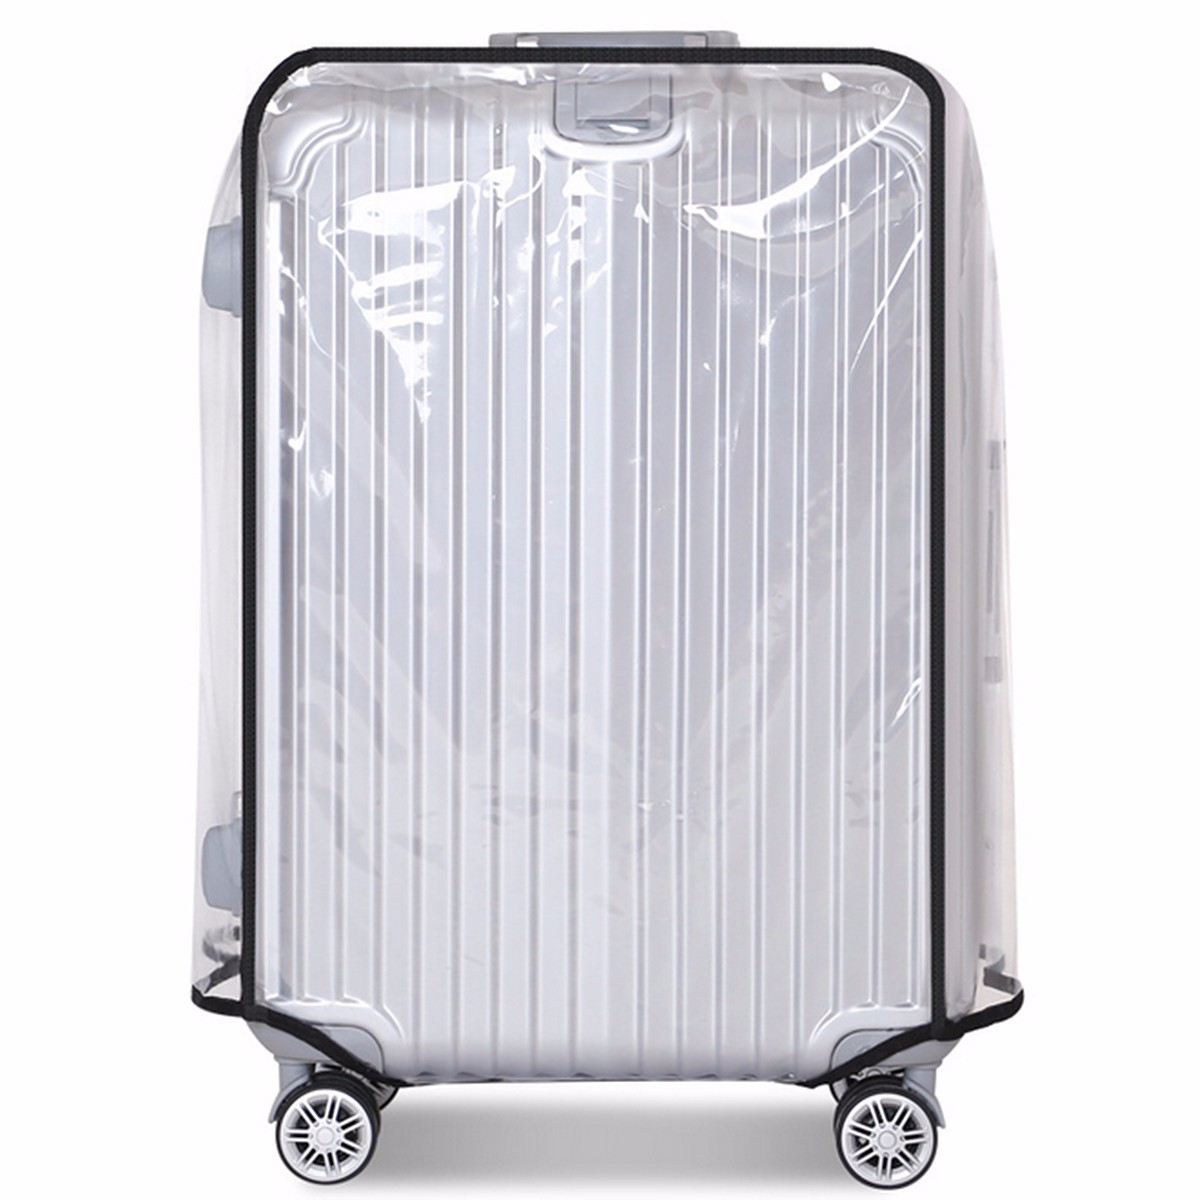 AEQUEEN DustProof Luggage Protective Cover Waterproof Luggage Cover Transparent PVC Trolley Suitcase Cover Travel Case 20-30inch